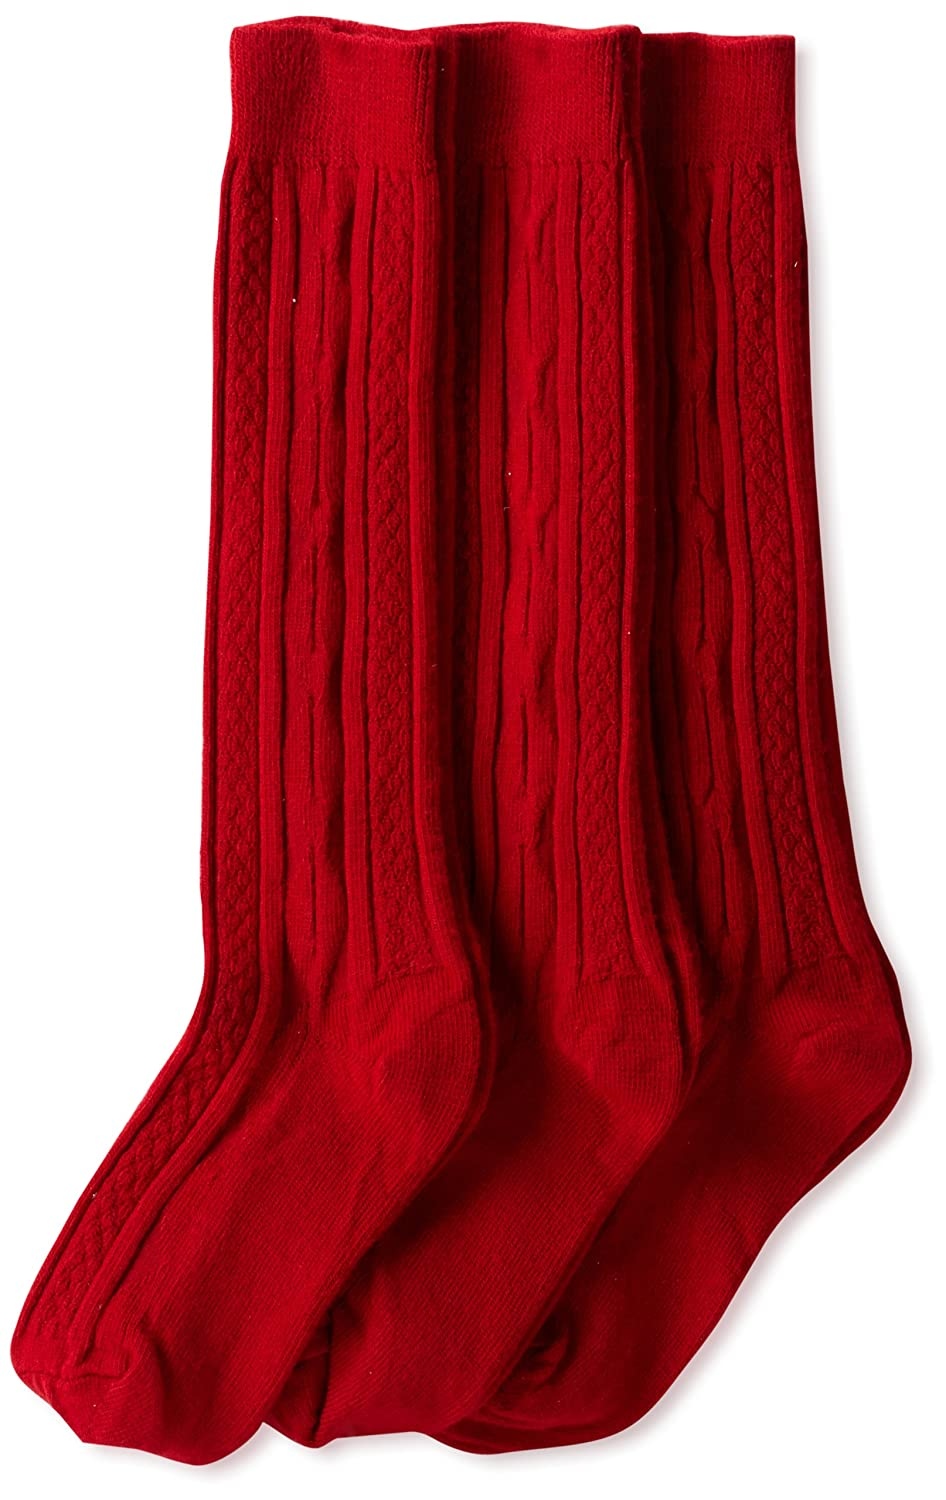 Jefferies Socks Little Girls' School Uniform Cable-Knit Knee-High Socks (Pack of 3) Burgundy Small Jefferies Socks Girls 2-6x BBMP3742